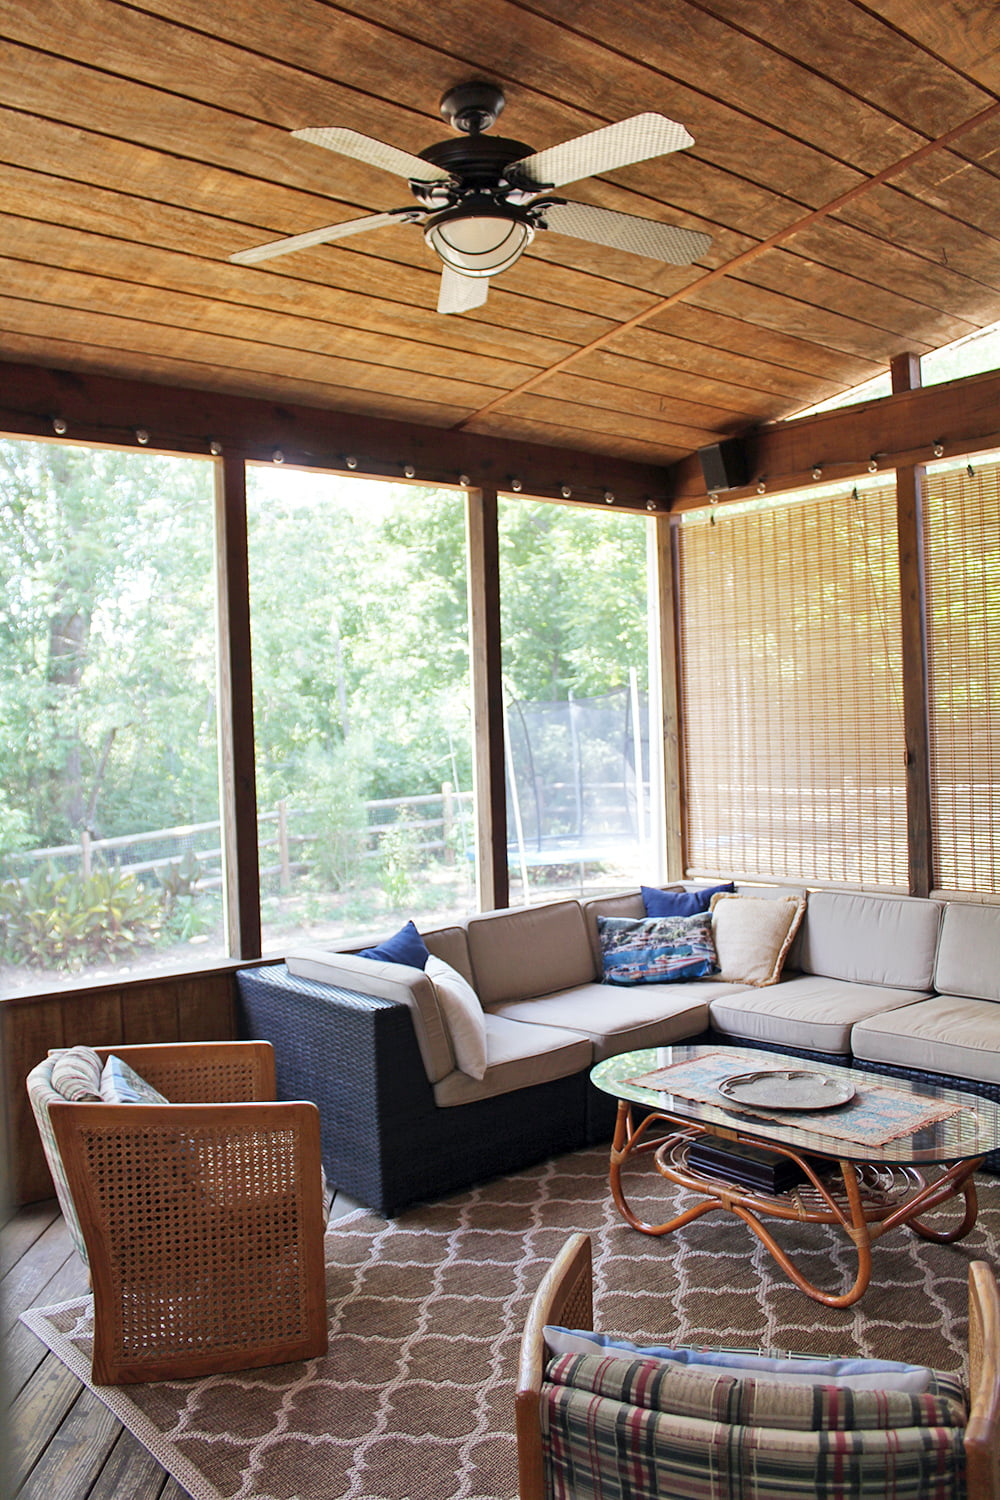 10 Screened In Porch Ideas — Tag & Tibby Design